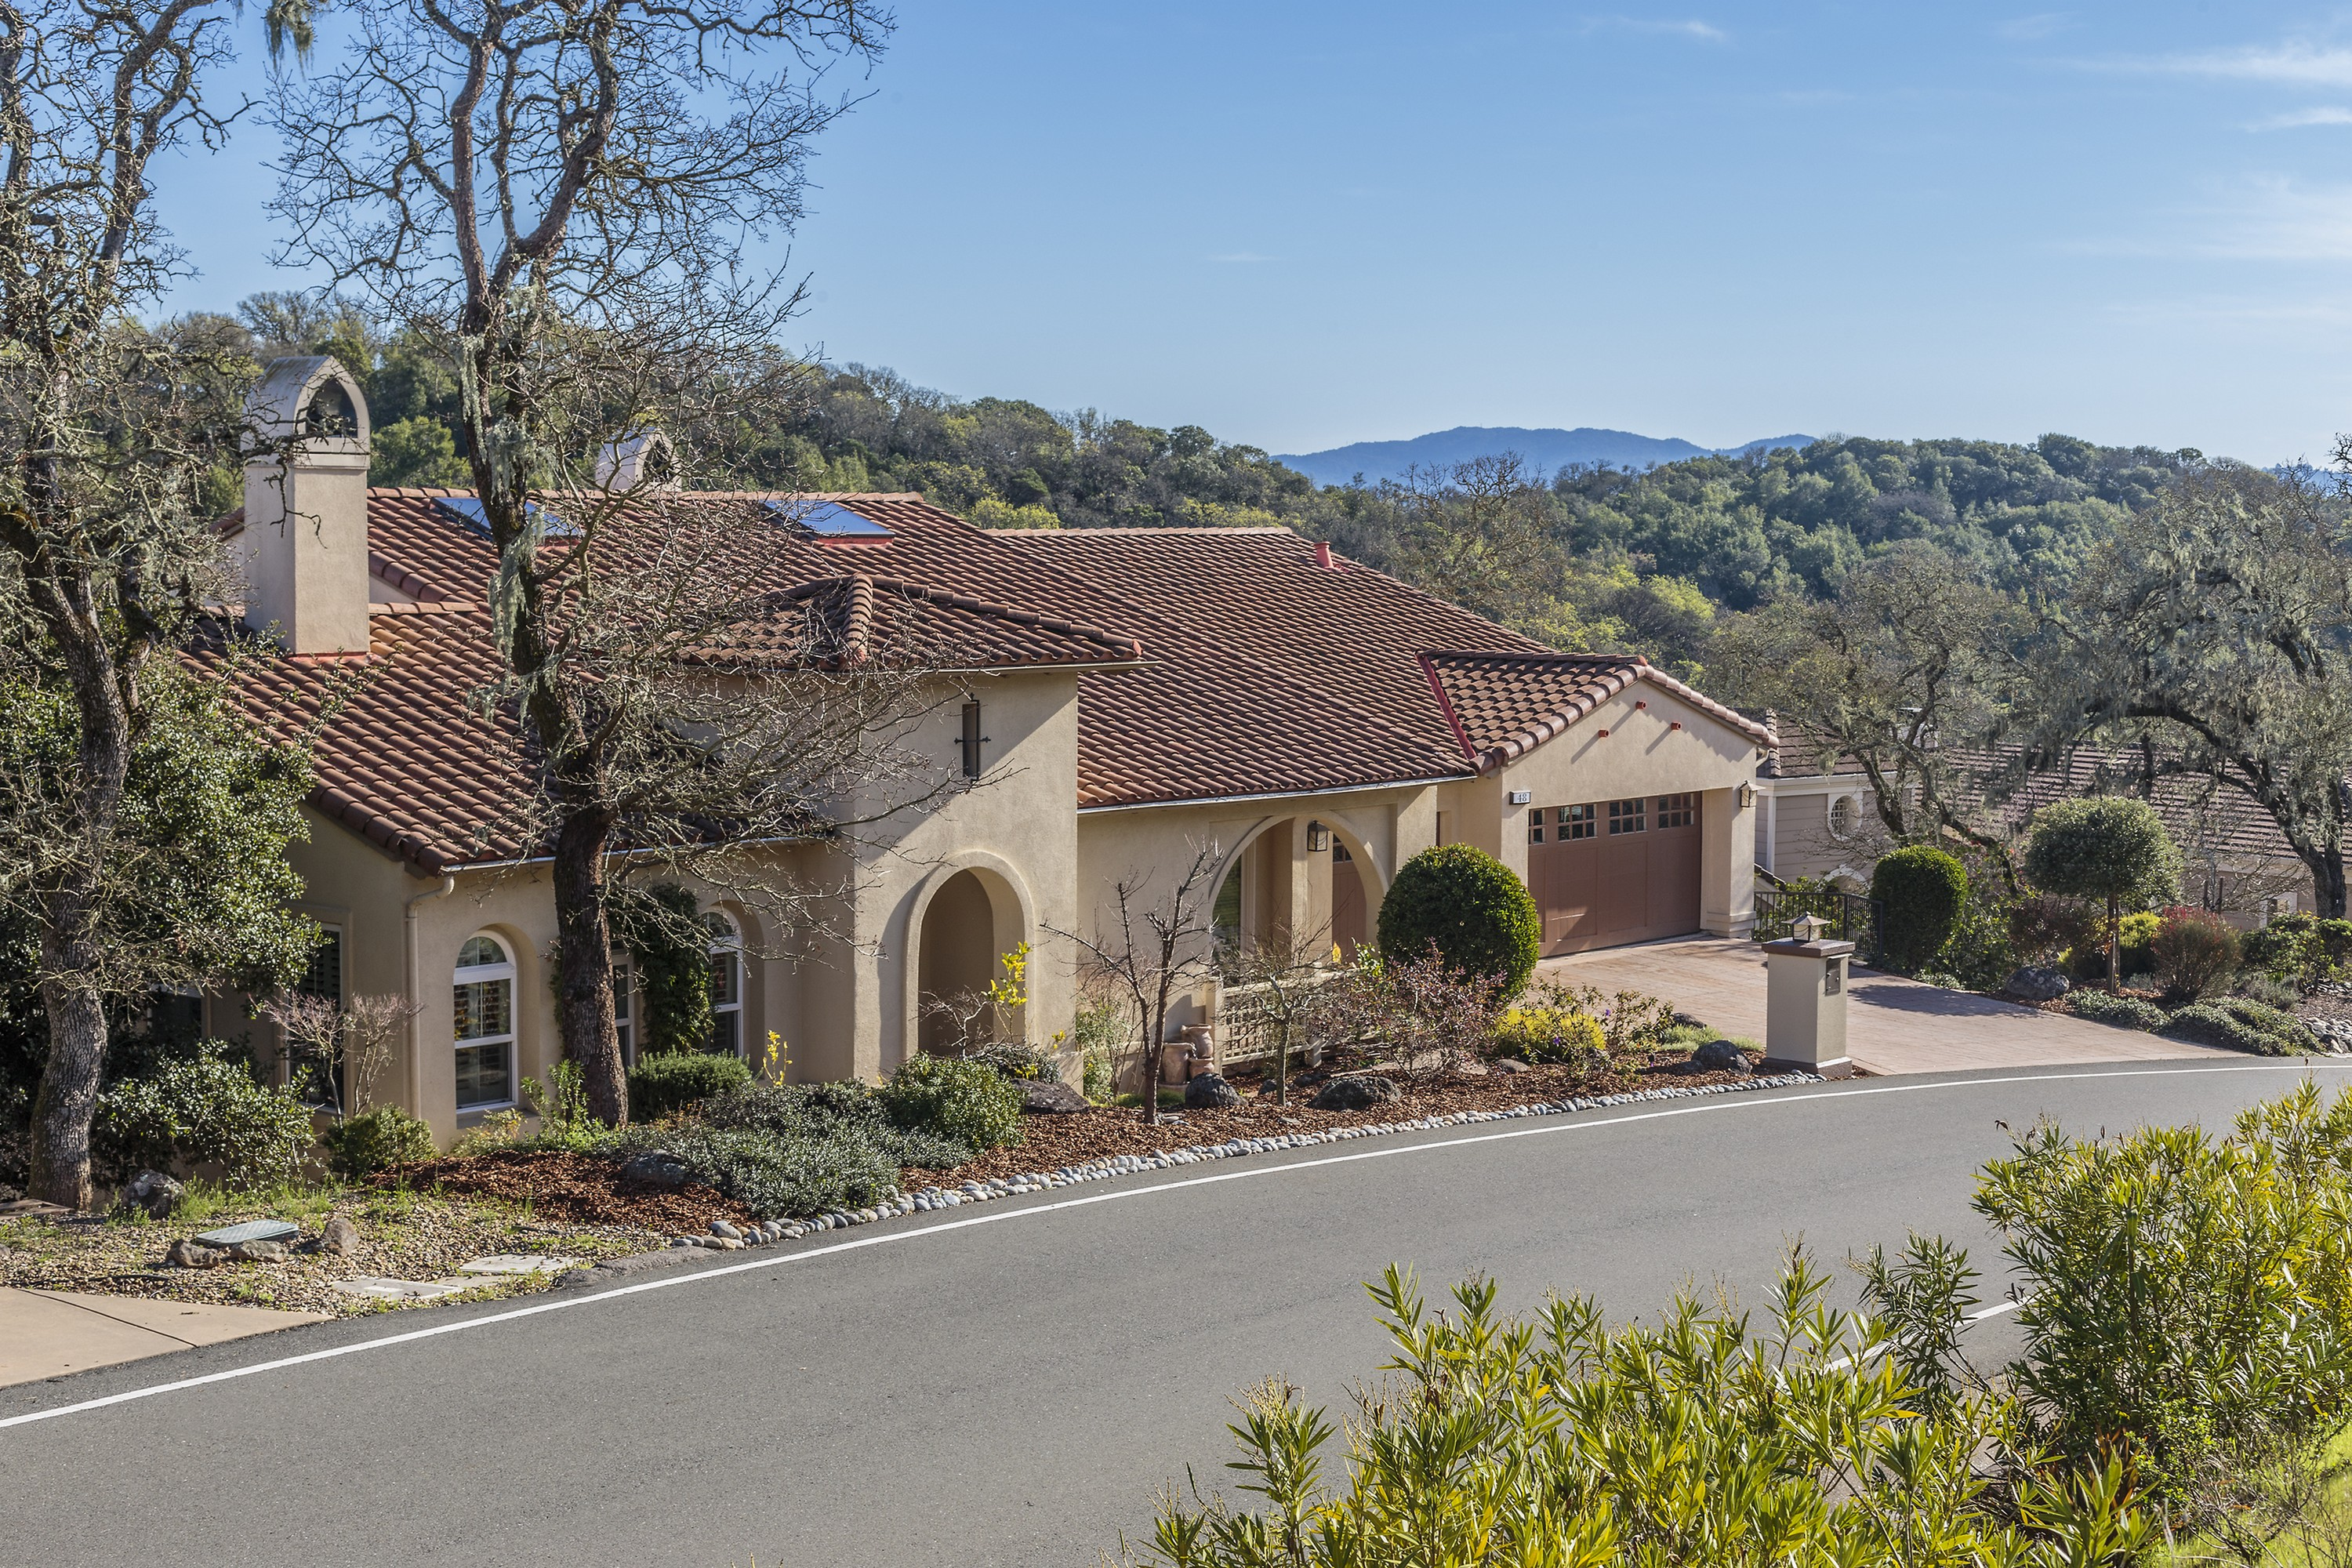 Single Family Home for Sale at Exquisite Tuscan Style Home at Stonetree Golf Club 48 Stonetree Lane Novato, 94945 United States